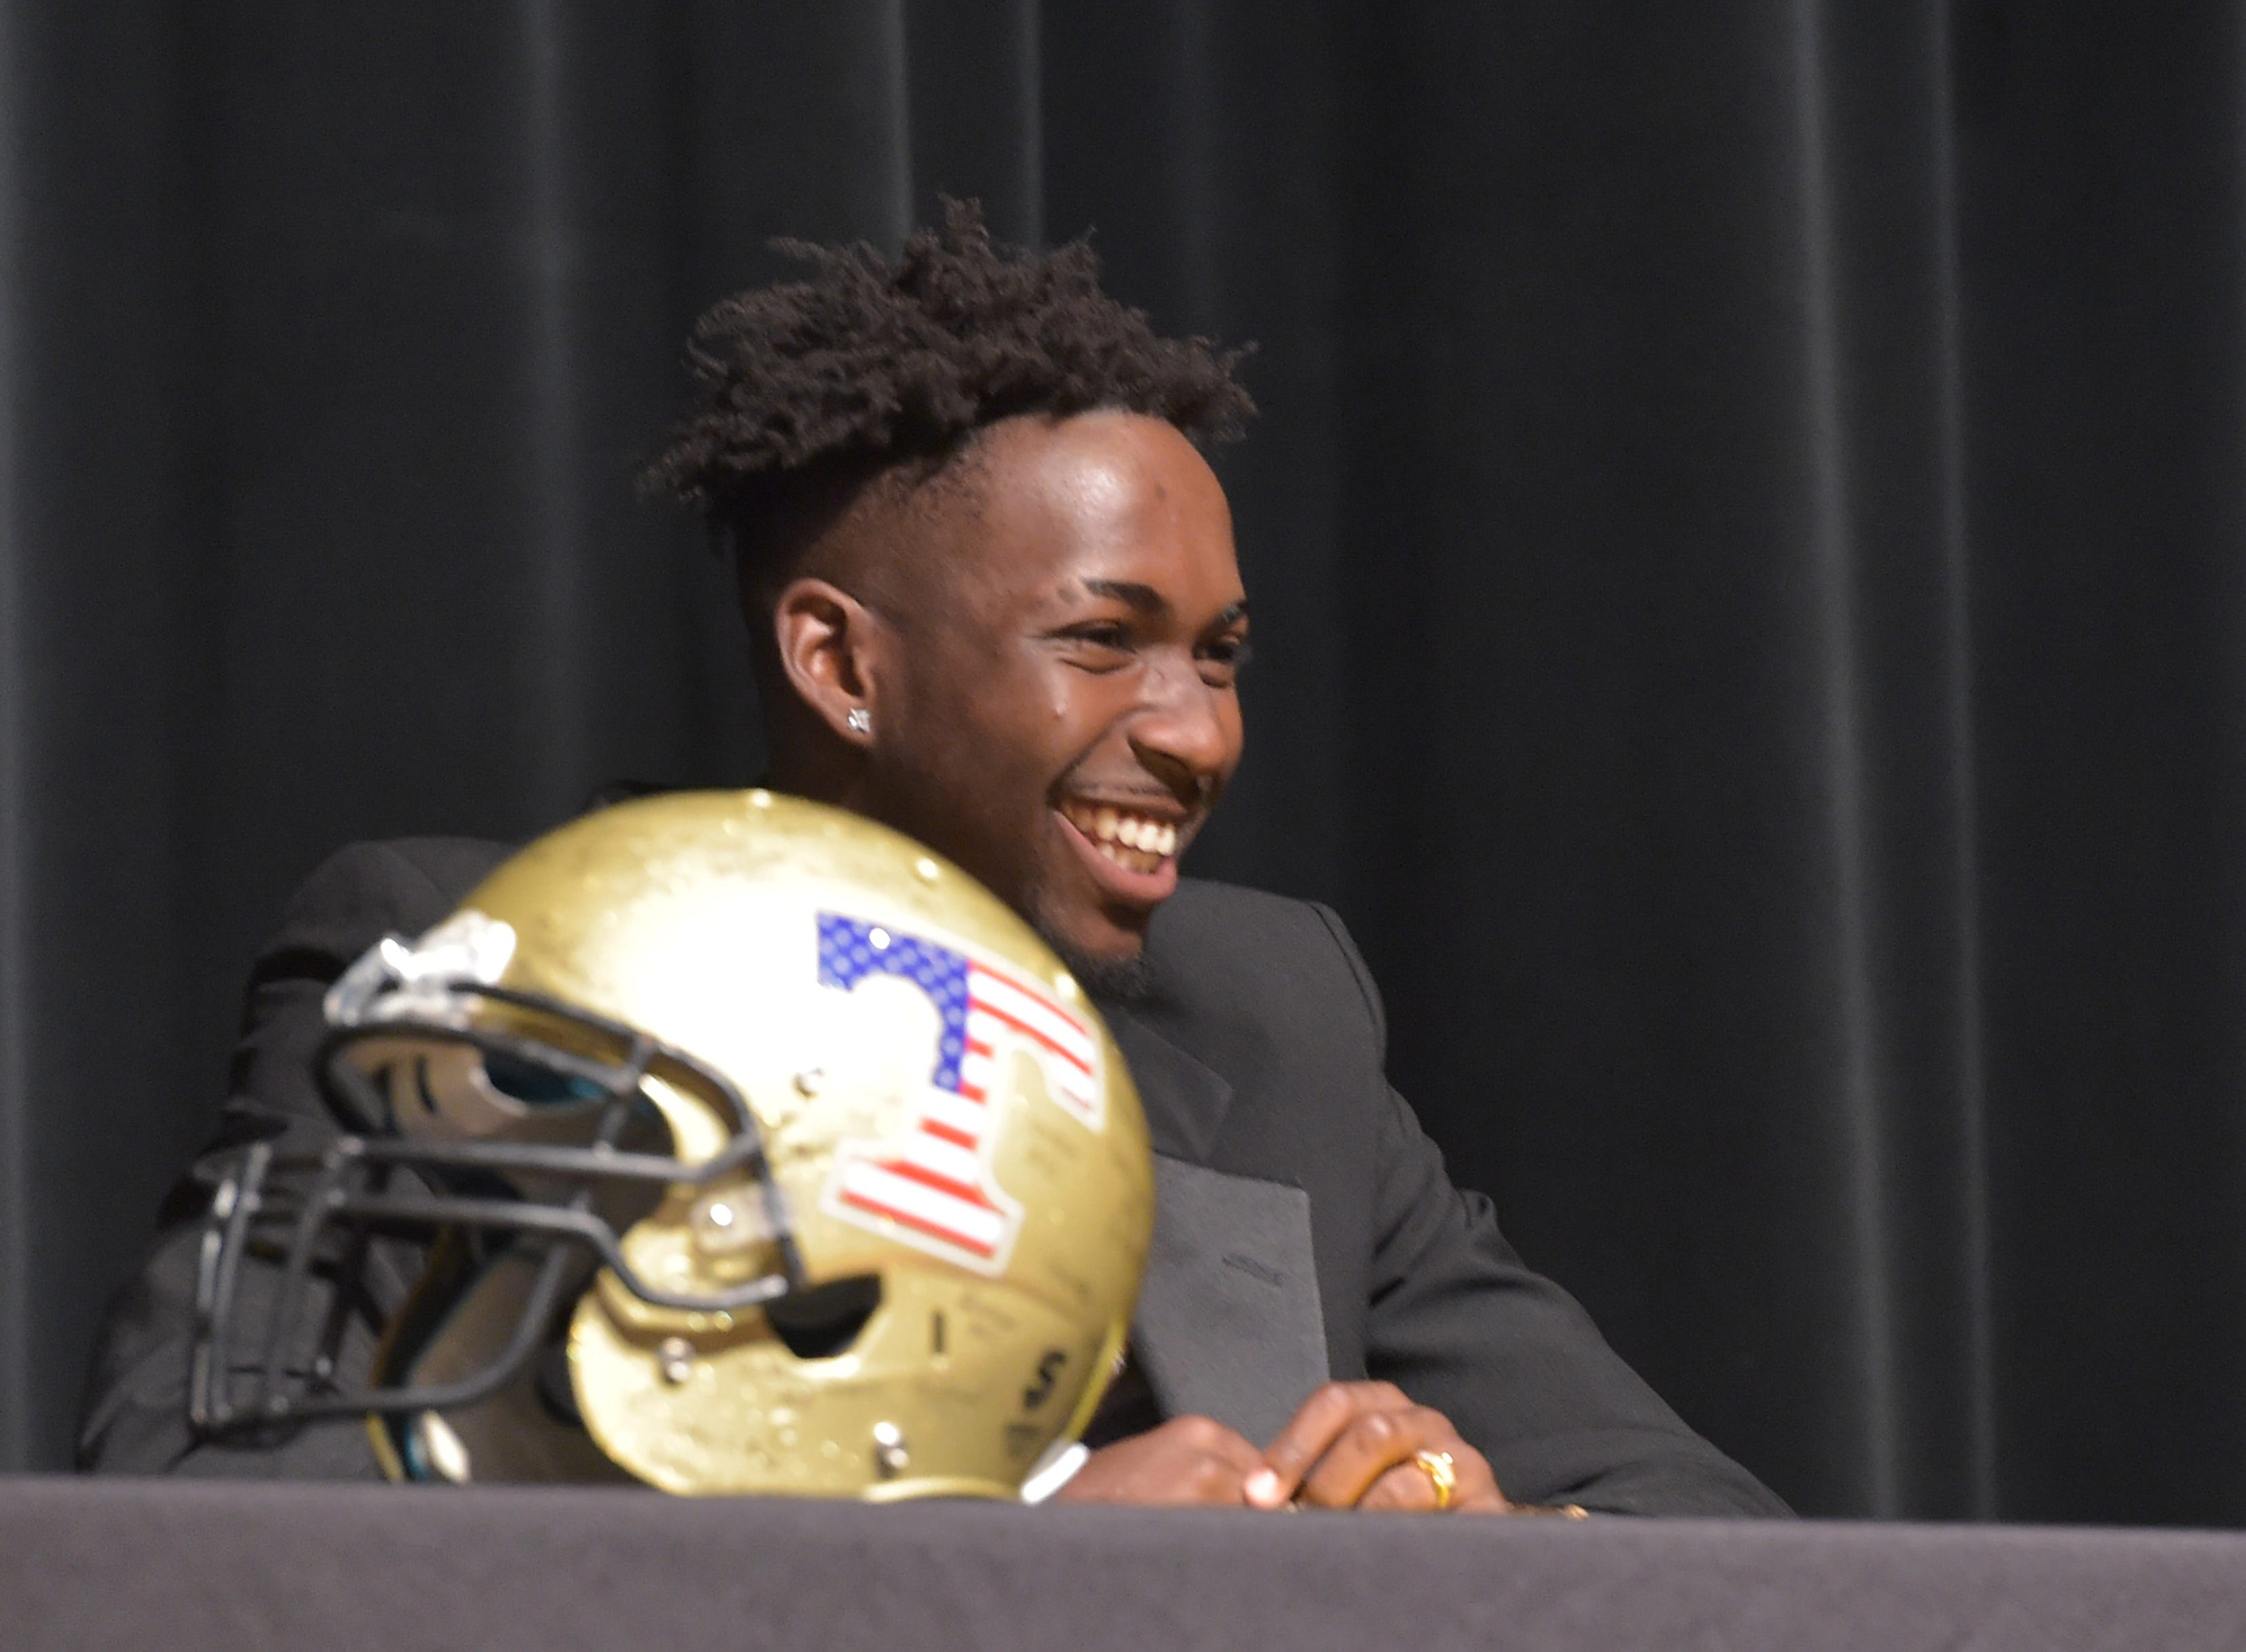 National Signing Day celebration at Treasure Coast High School auditorium on Wednesday, Feb. 6, 2019, in Port St. Lucie. Joel Rose signed with Valdosta State, Jerry Johnson signed with Rice University, Shamar Minnis signed with Bethune-Cookman University, Tyrec Thompson signed with Iowa Western, Joshua Nunes signed with Central State University in Ohio, Brendon Joseph signed with Ave Maria University, and Anthony Martens signed with University of West Florida to play baseball.